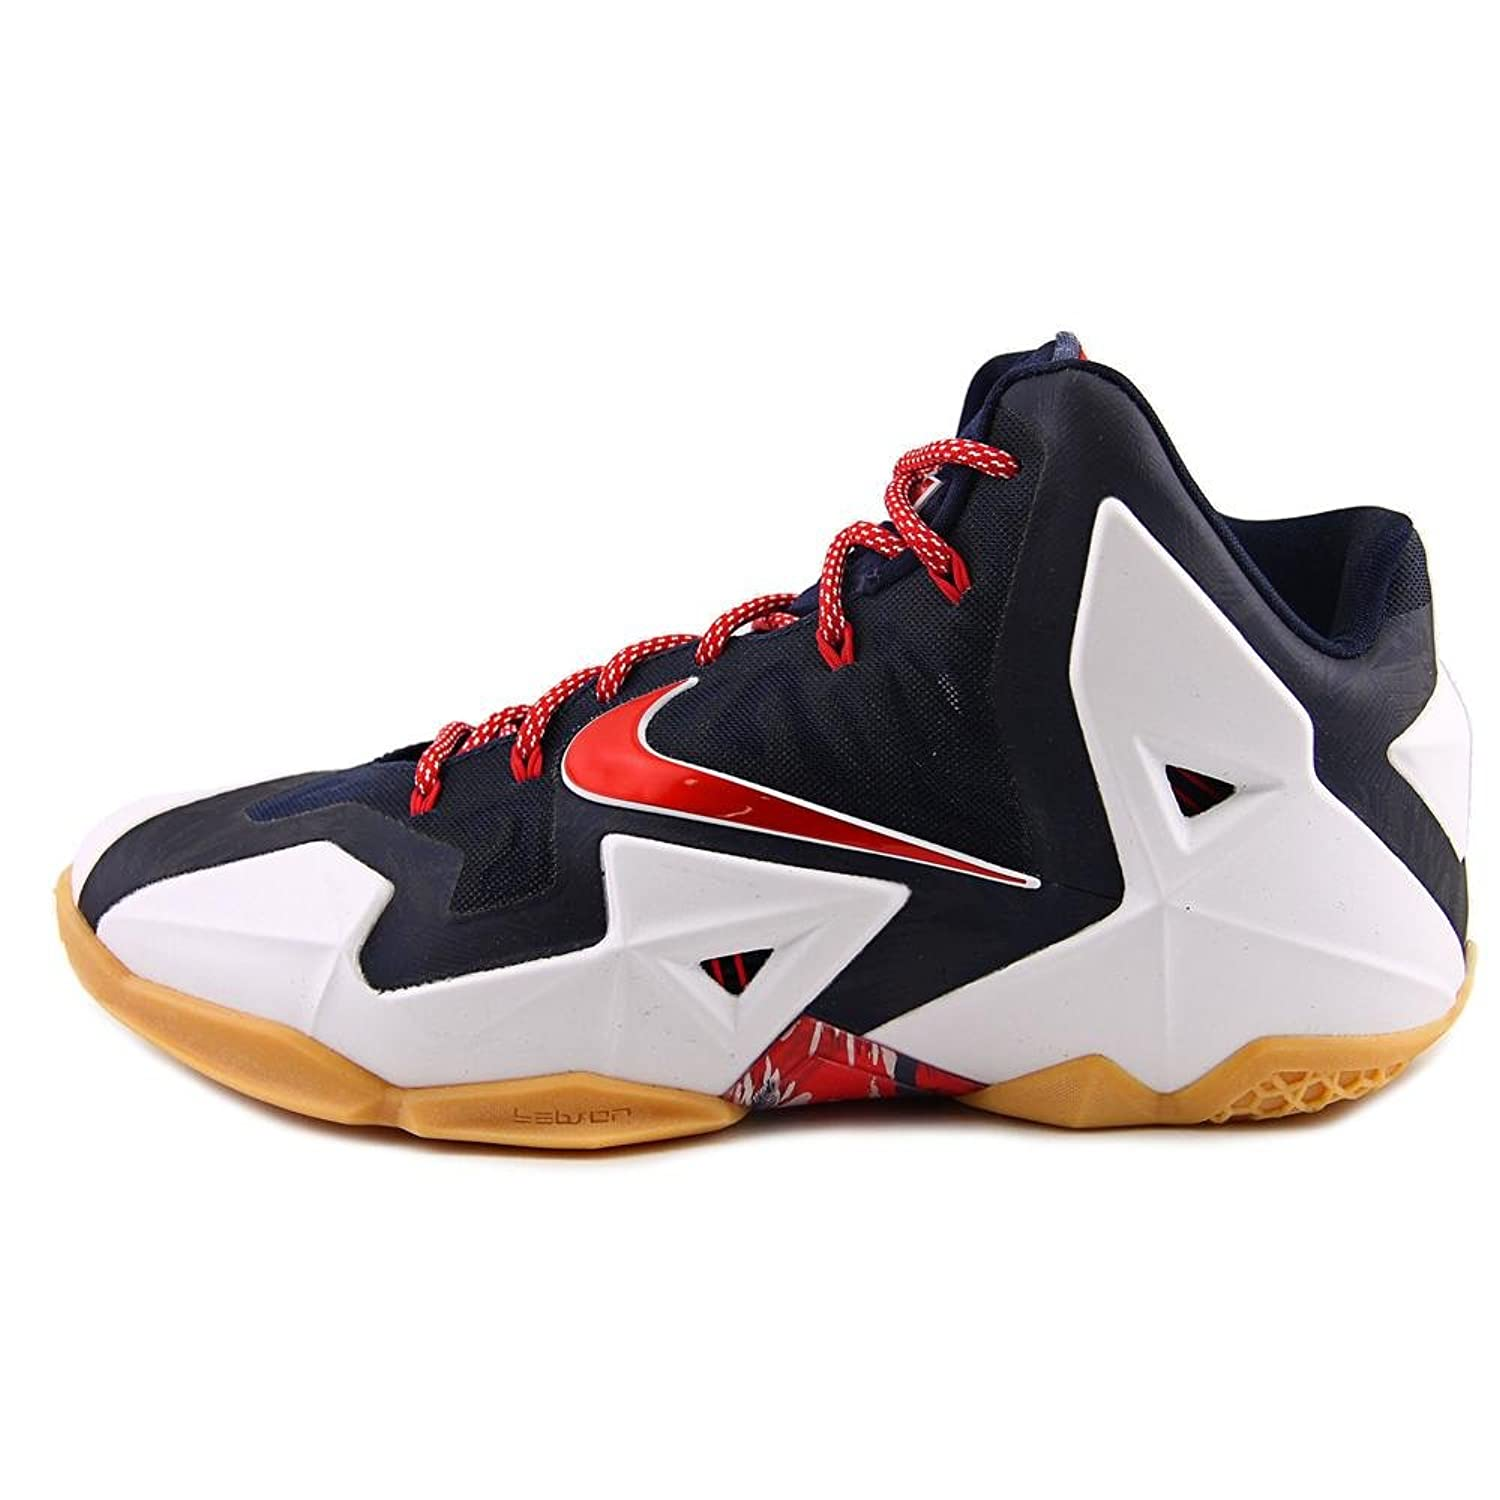 Amazon.com | Nike Lebron XI "|1500|1500|?|f452c73f4b67ee5a8ae8cc1e7a558eb5|False|UNLIKELY|0.3251560926437378